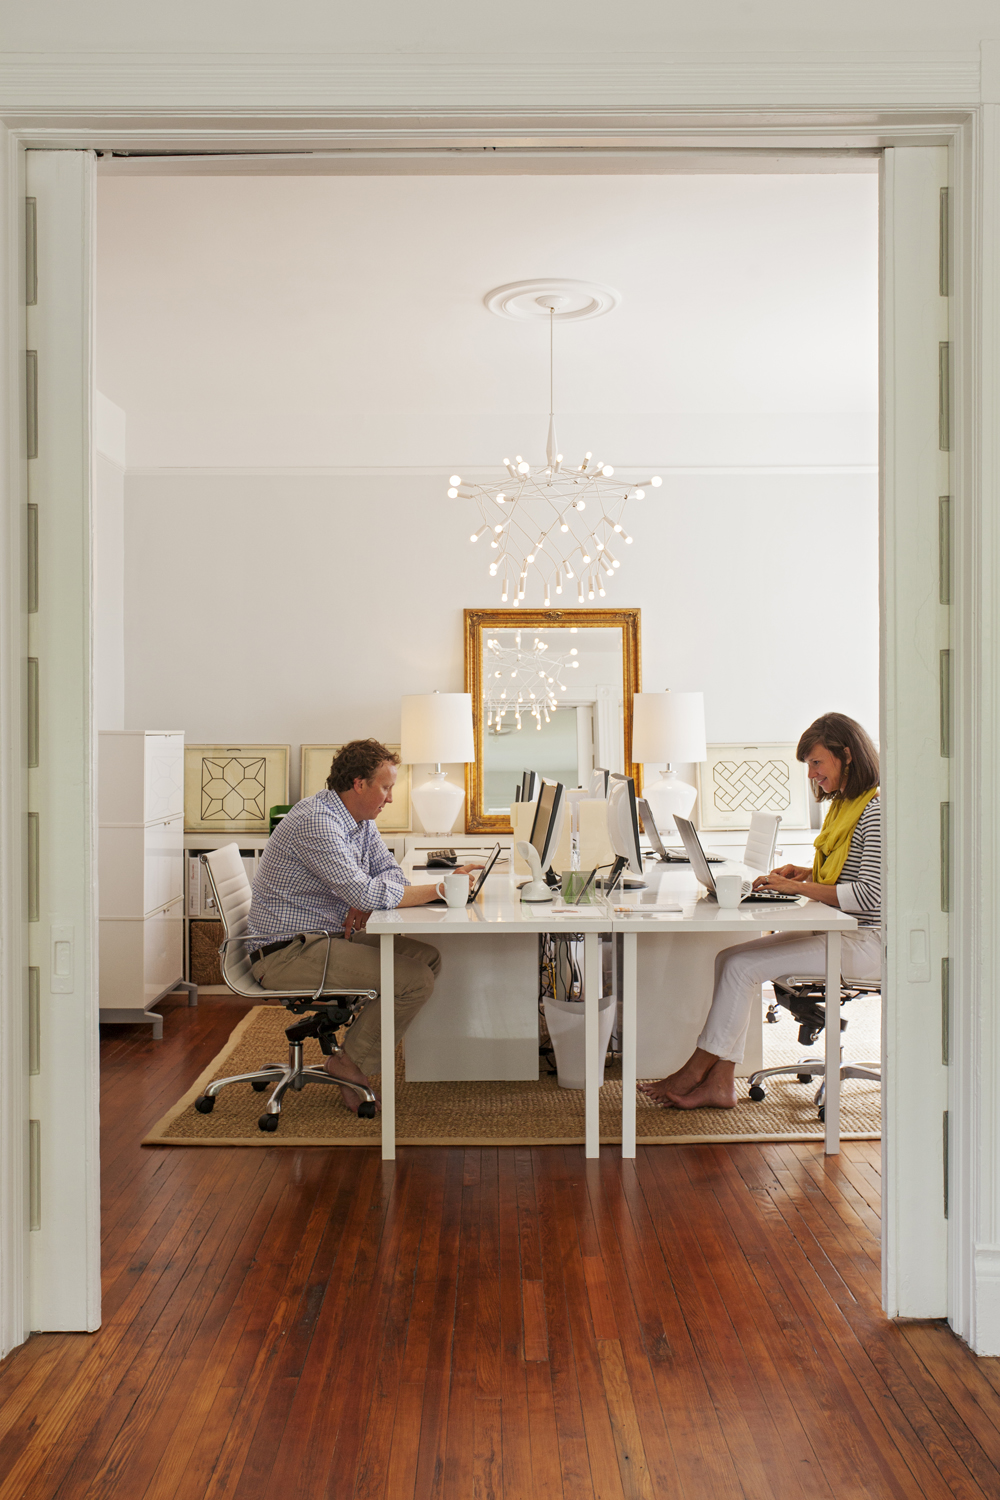 Here, Lauren tackles design projects for commercial and residential clients; Jonathan occasionally works here, too.